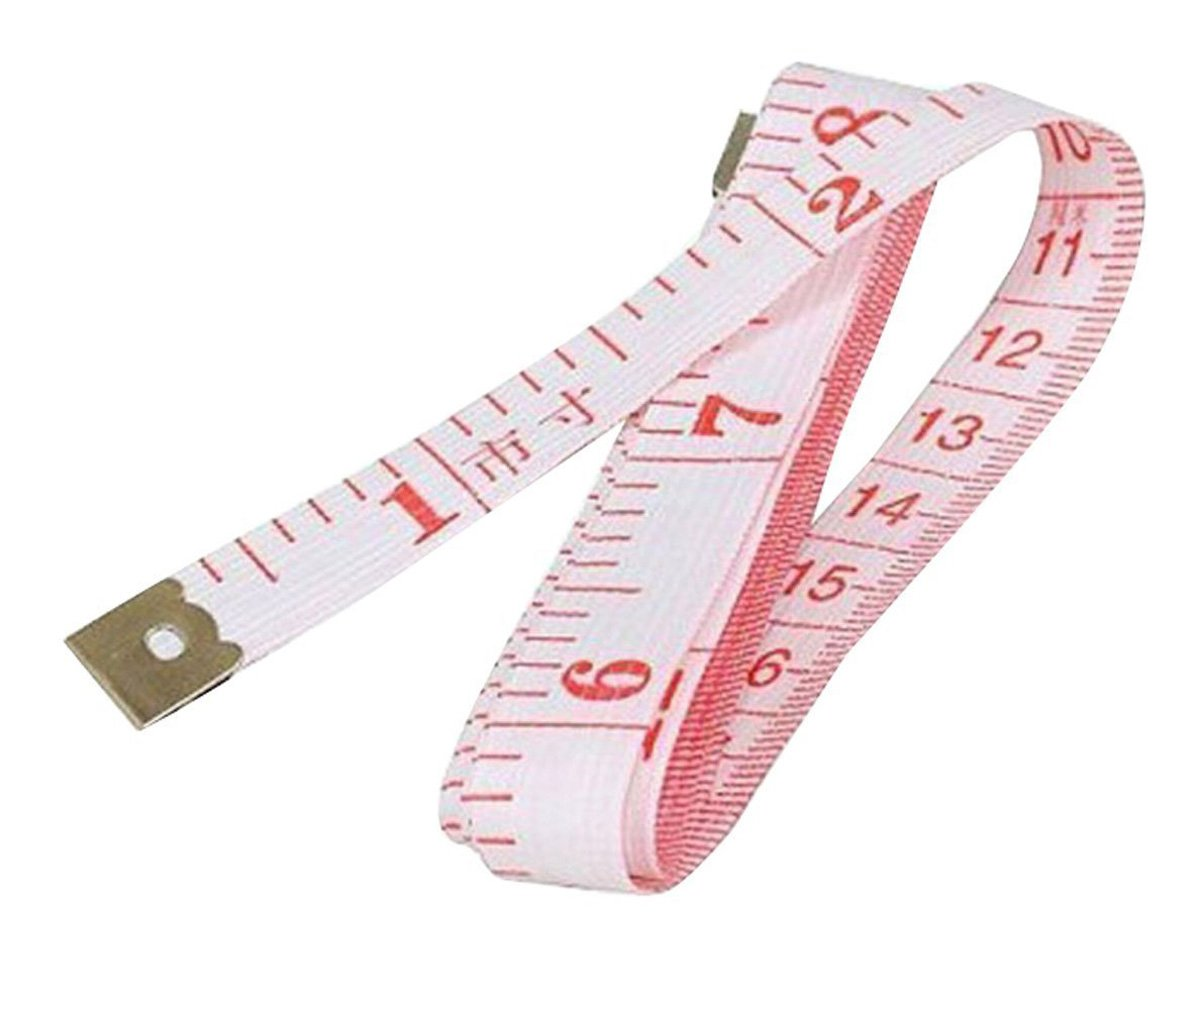 2 pcs 3 In 1 Plastic French Curve Metric Sewing Ruler Measure For Dressmaking Tailor Grading Rule Pattern Making Generic ISOMA109